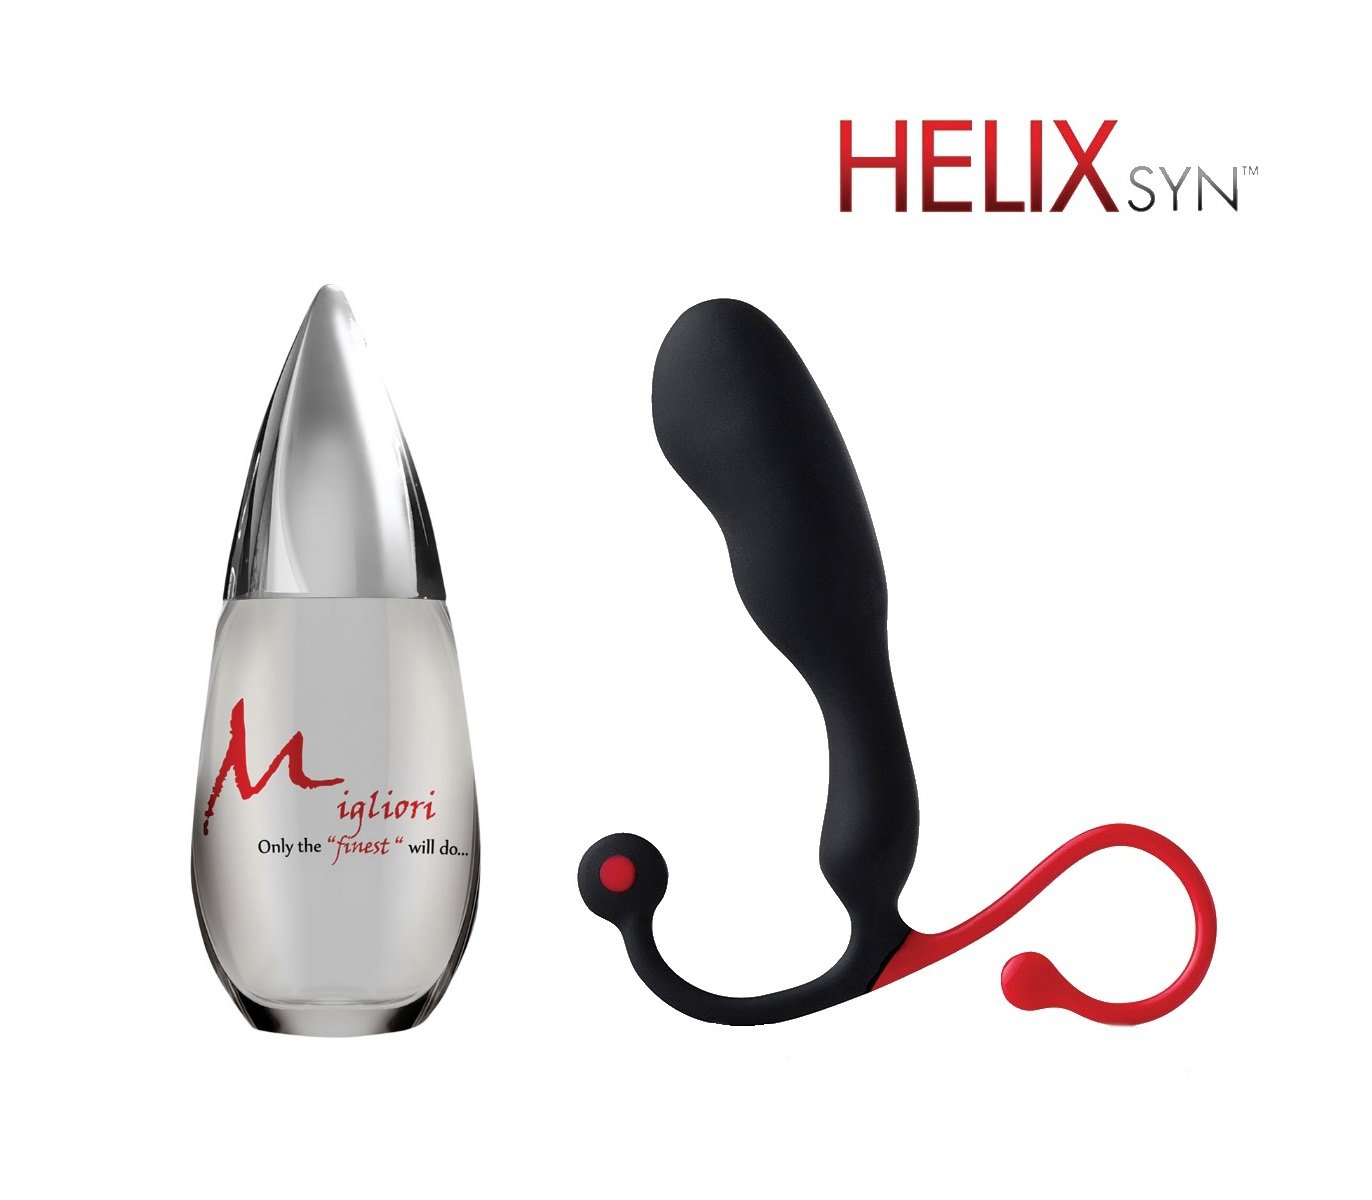 Aneros Helix SYN paired with Migliori premium silicone-based lubricant (100 ml) by Aneros, Migliori